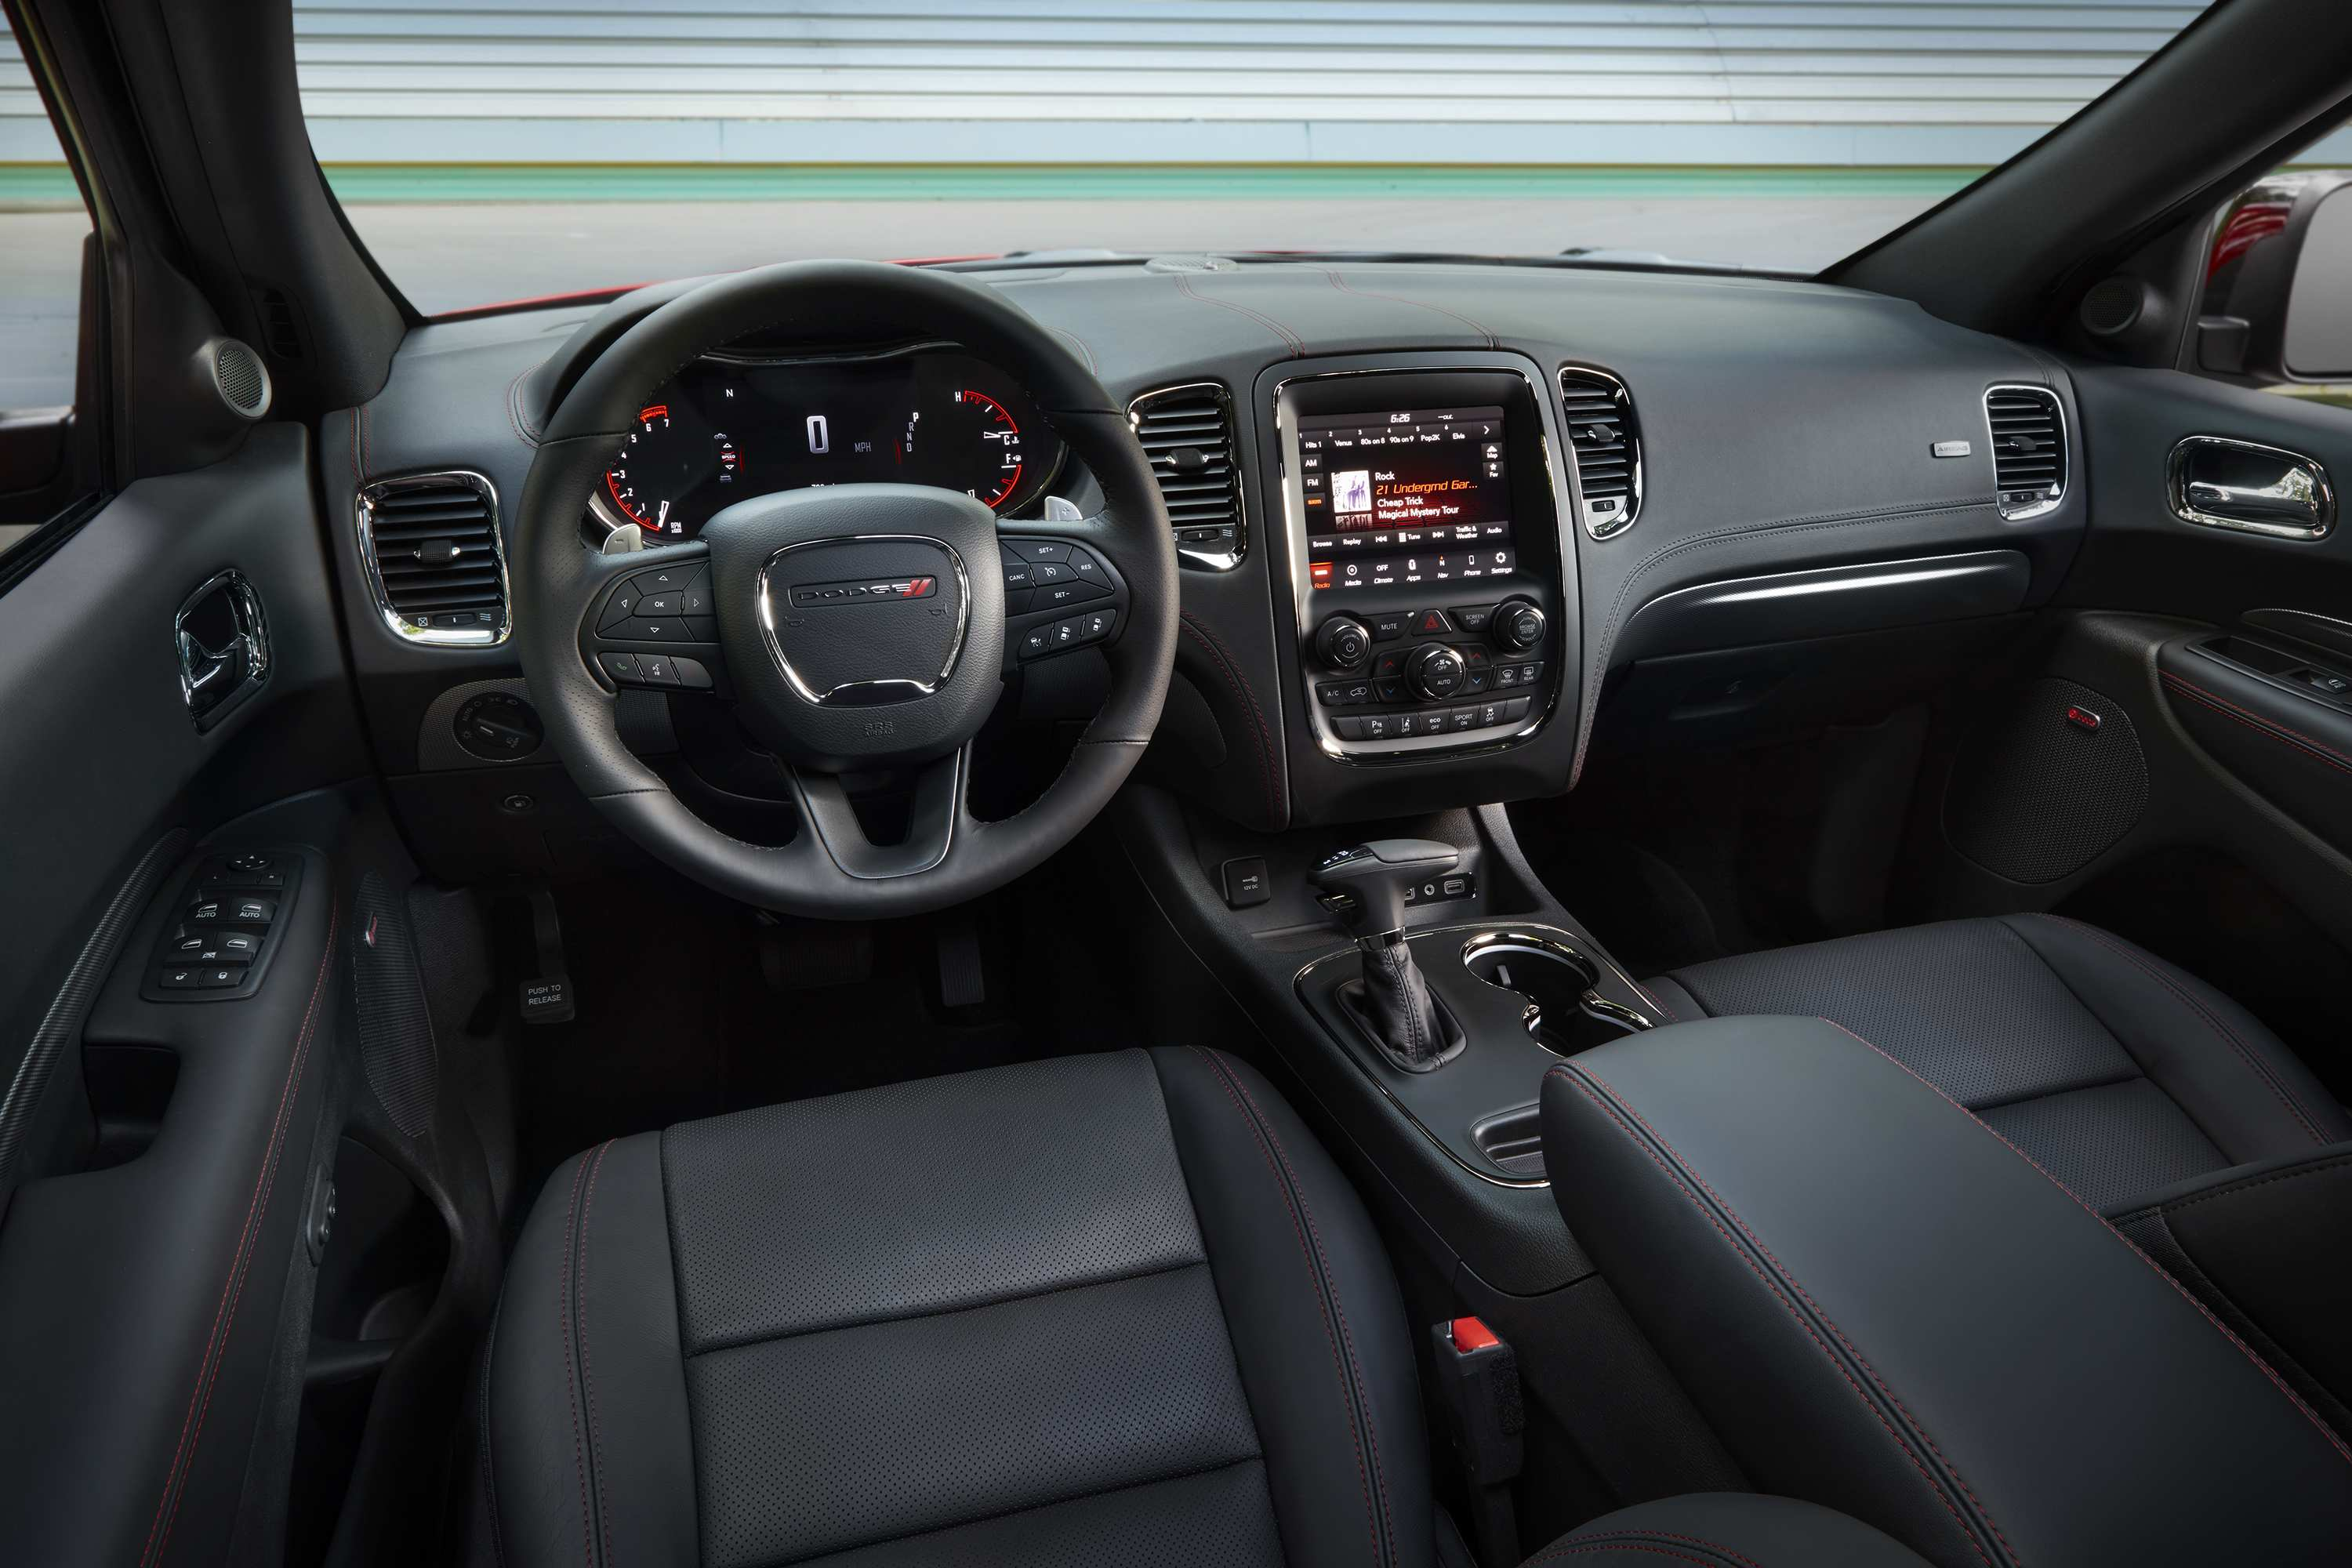 50 Concept of 2020 Dodge Durango Interior Specs and Review with 2020 Dodge Durango Interior